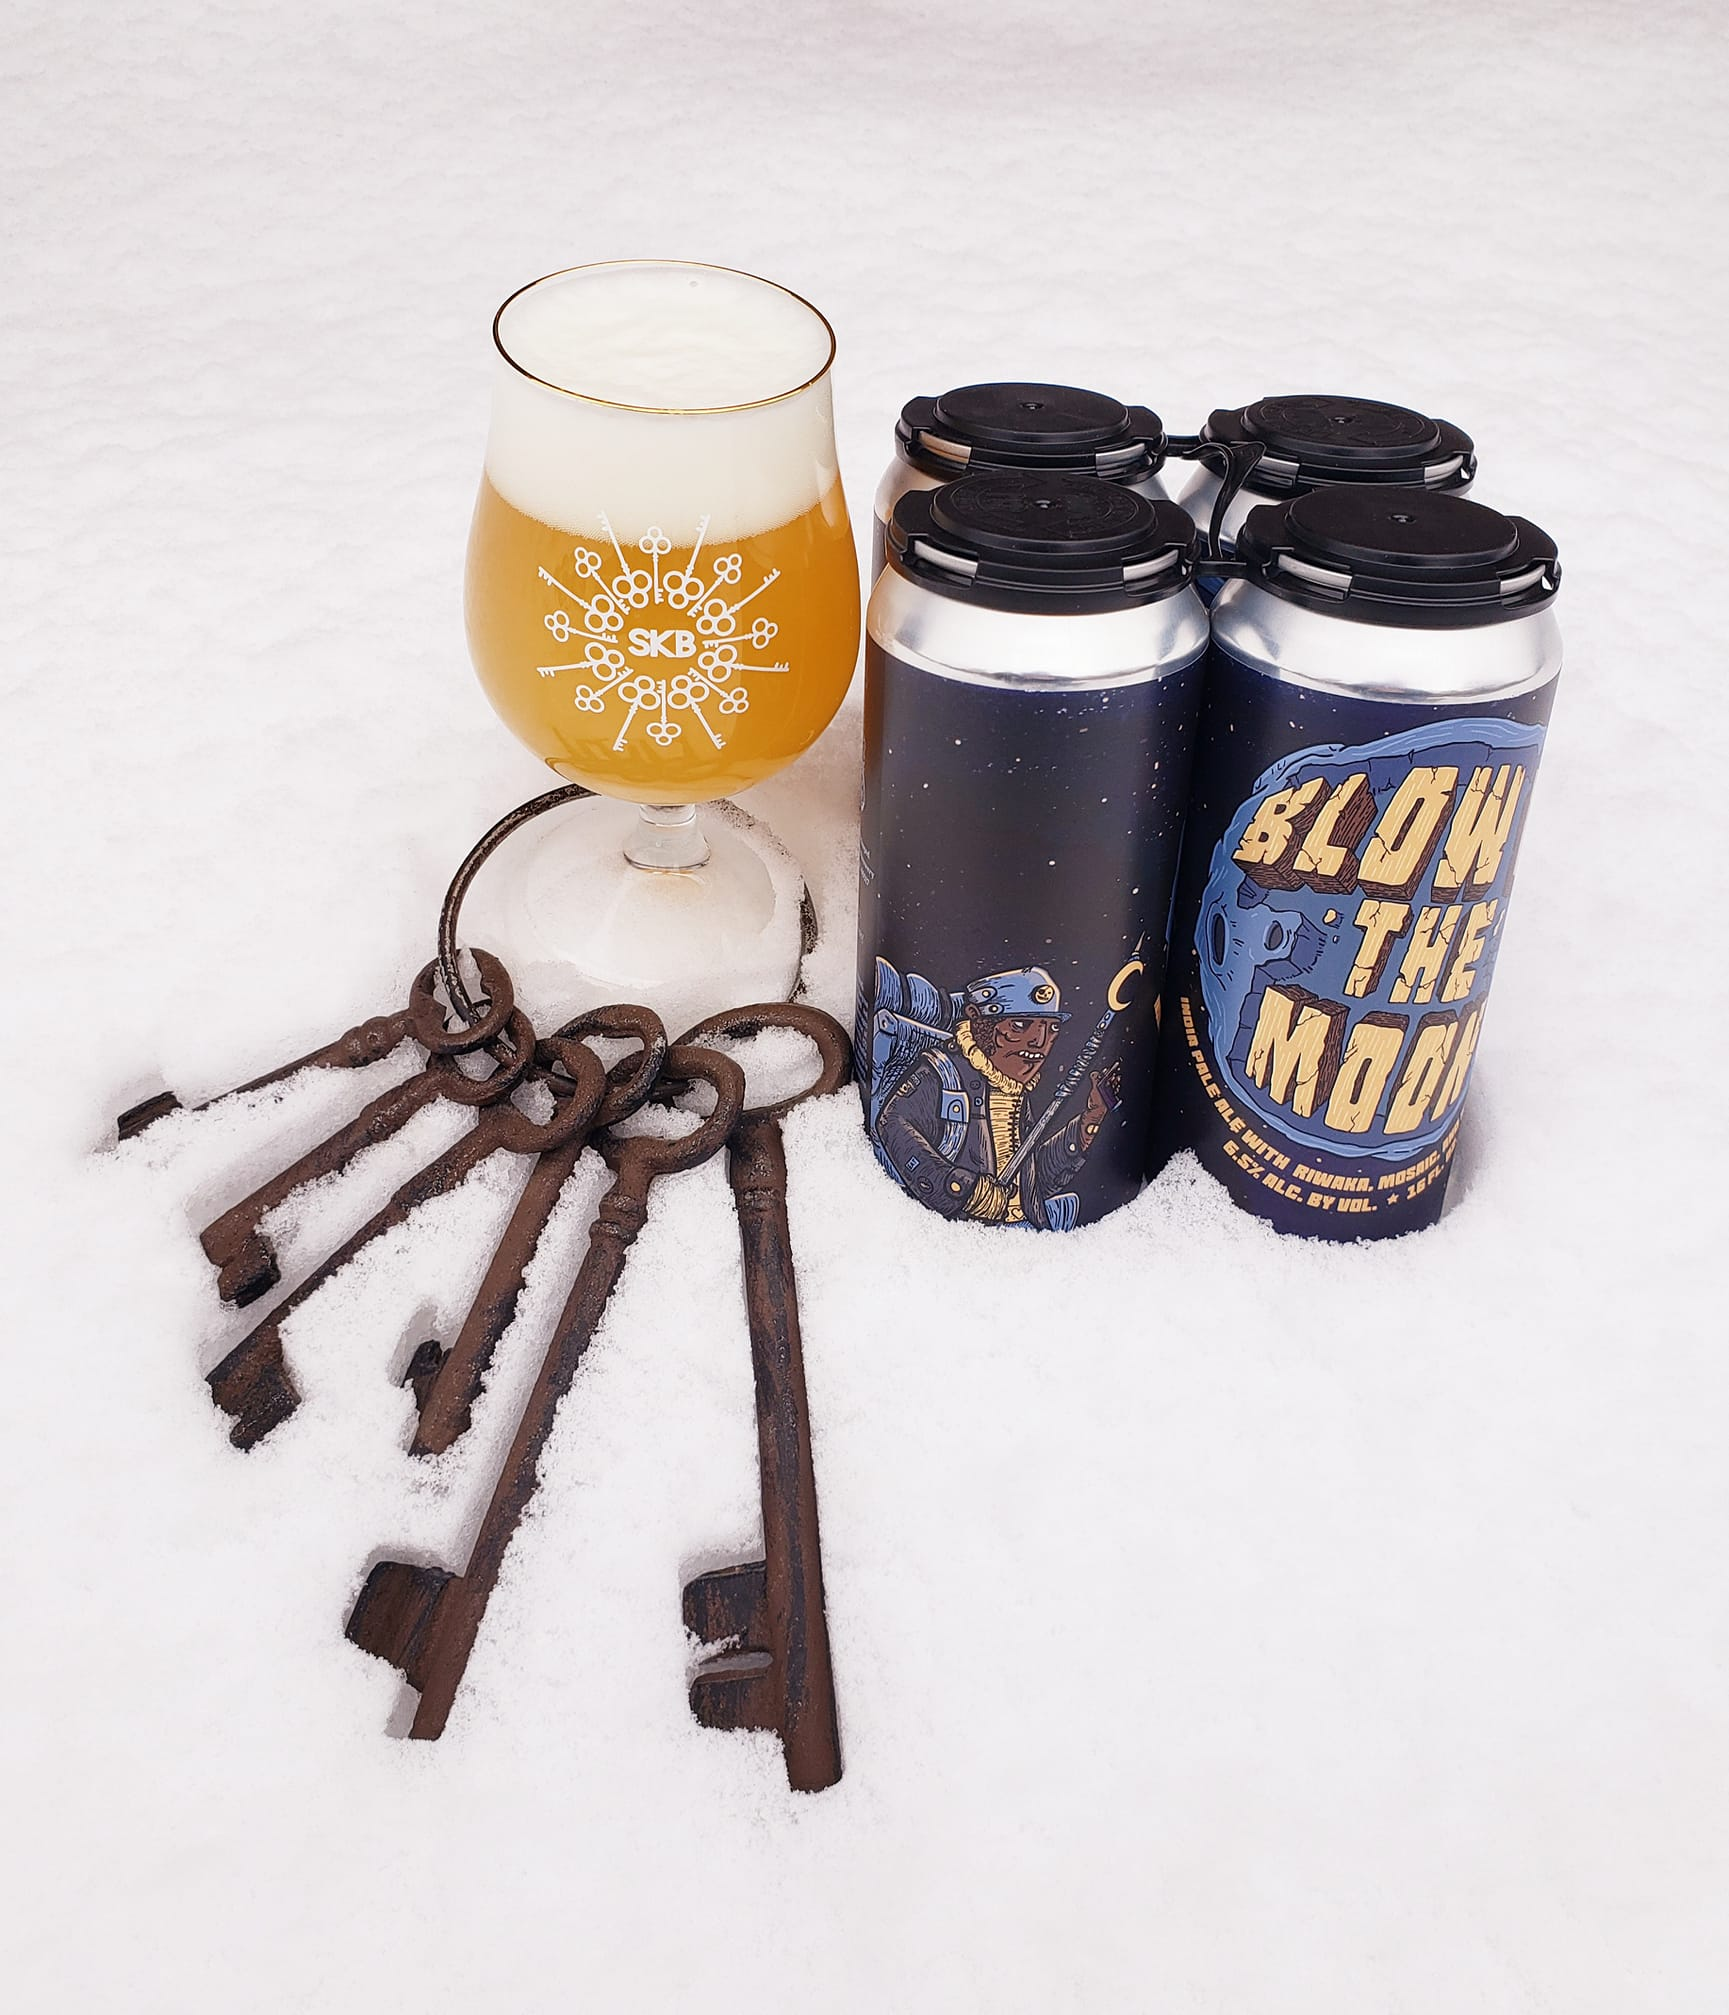 A four-pack of beer and a glass in the snow, along with a key ring featuring old fashioned keys